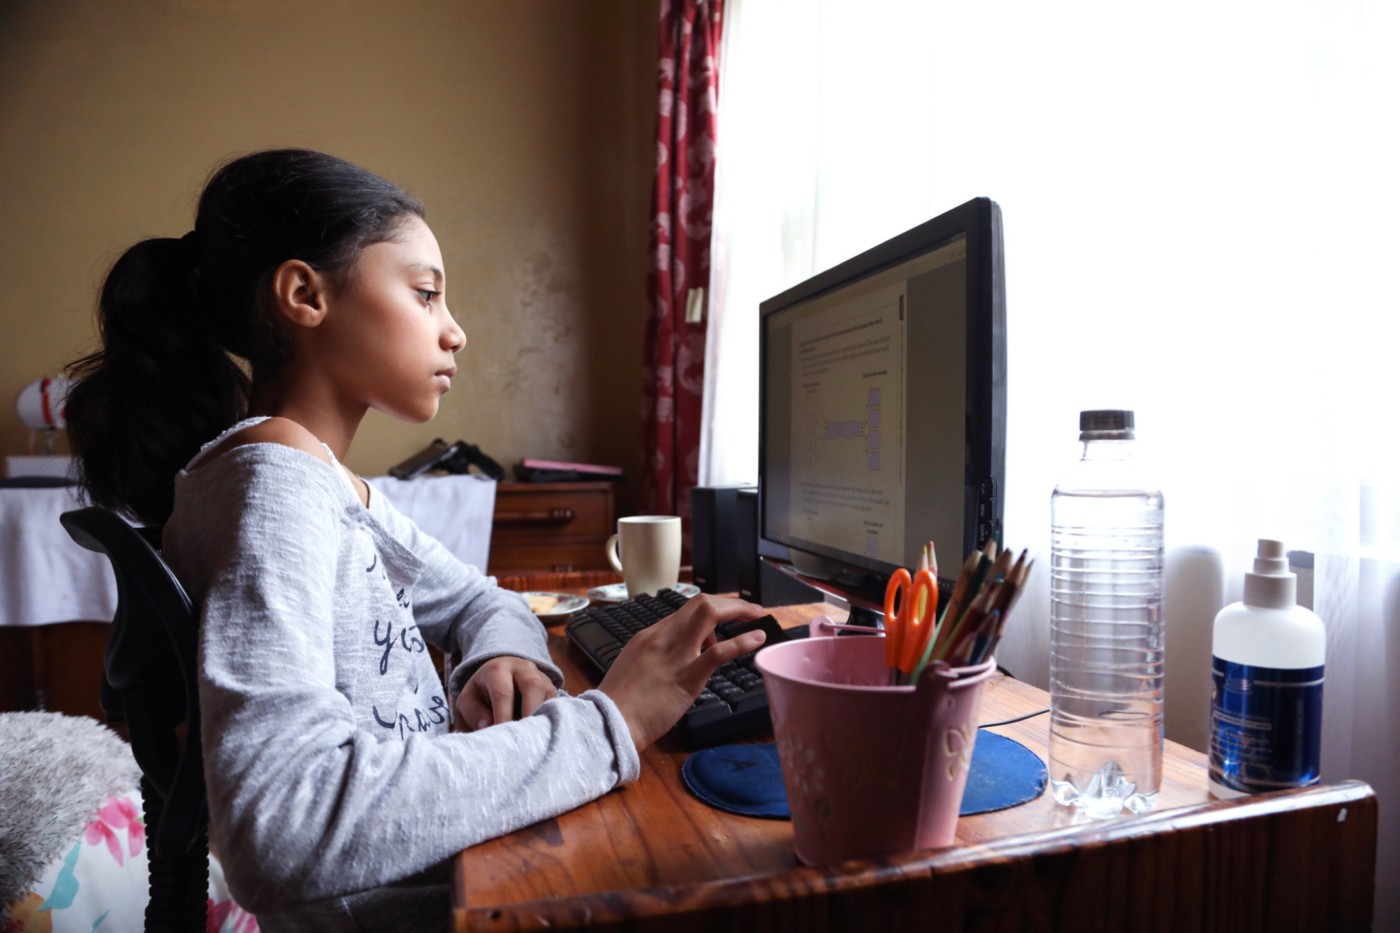 A photo of a young South Asian girl doing homework on her computer at her desk.